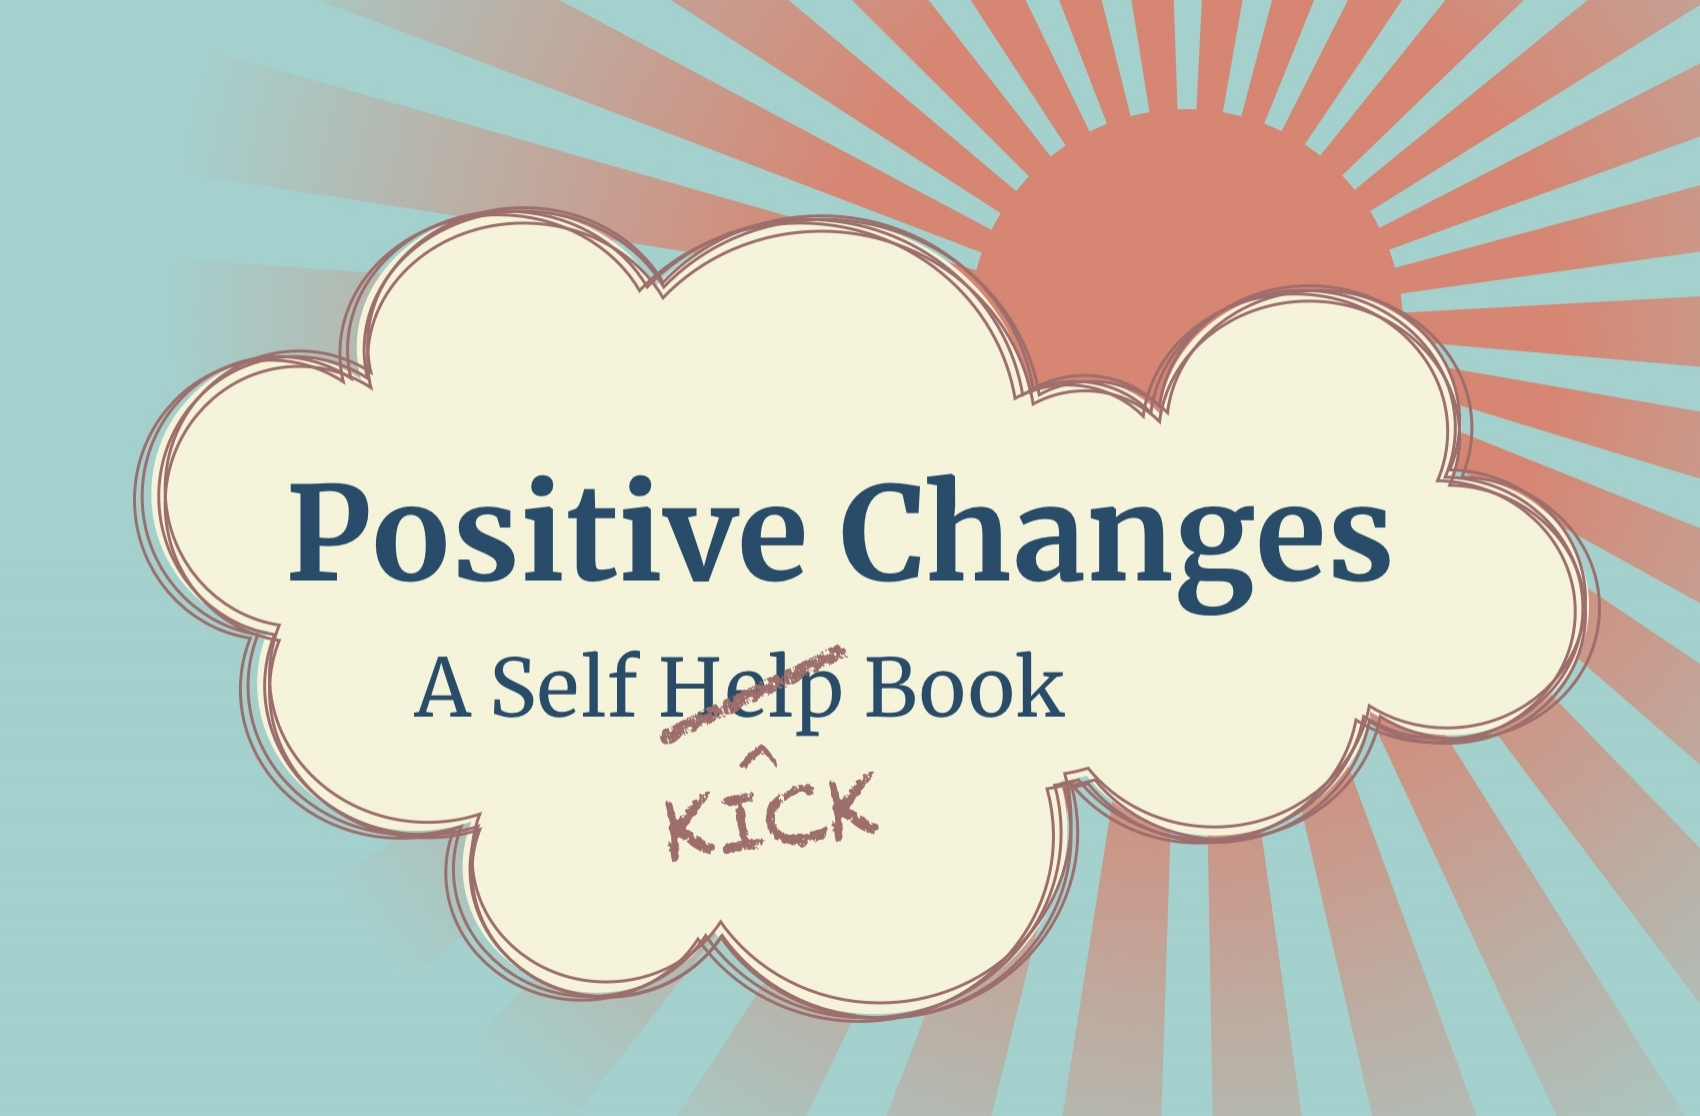 Positive Changes Book Cover.jpg